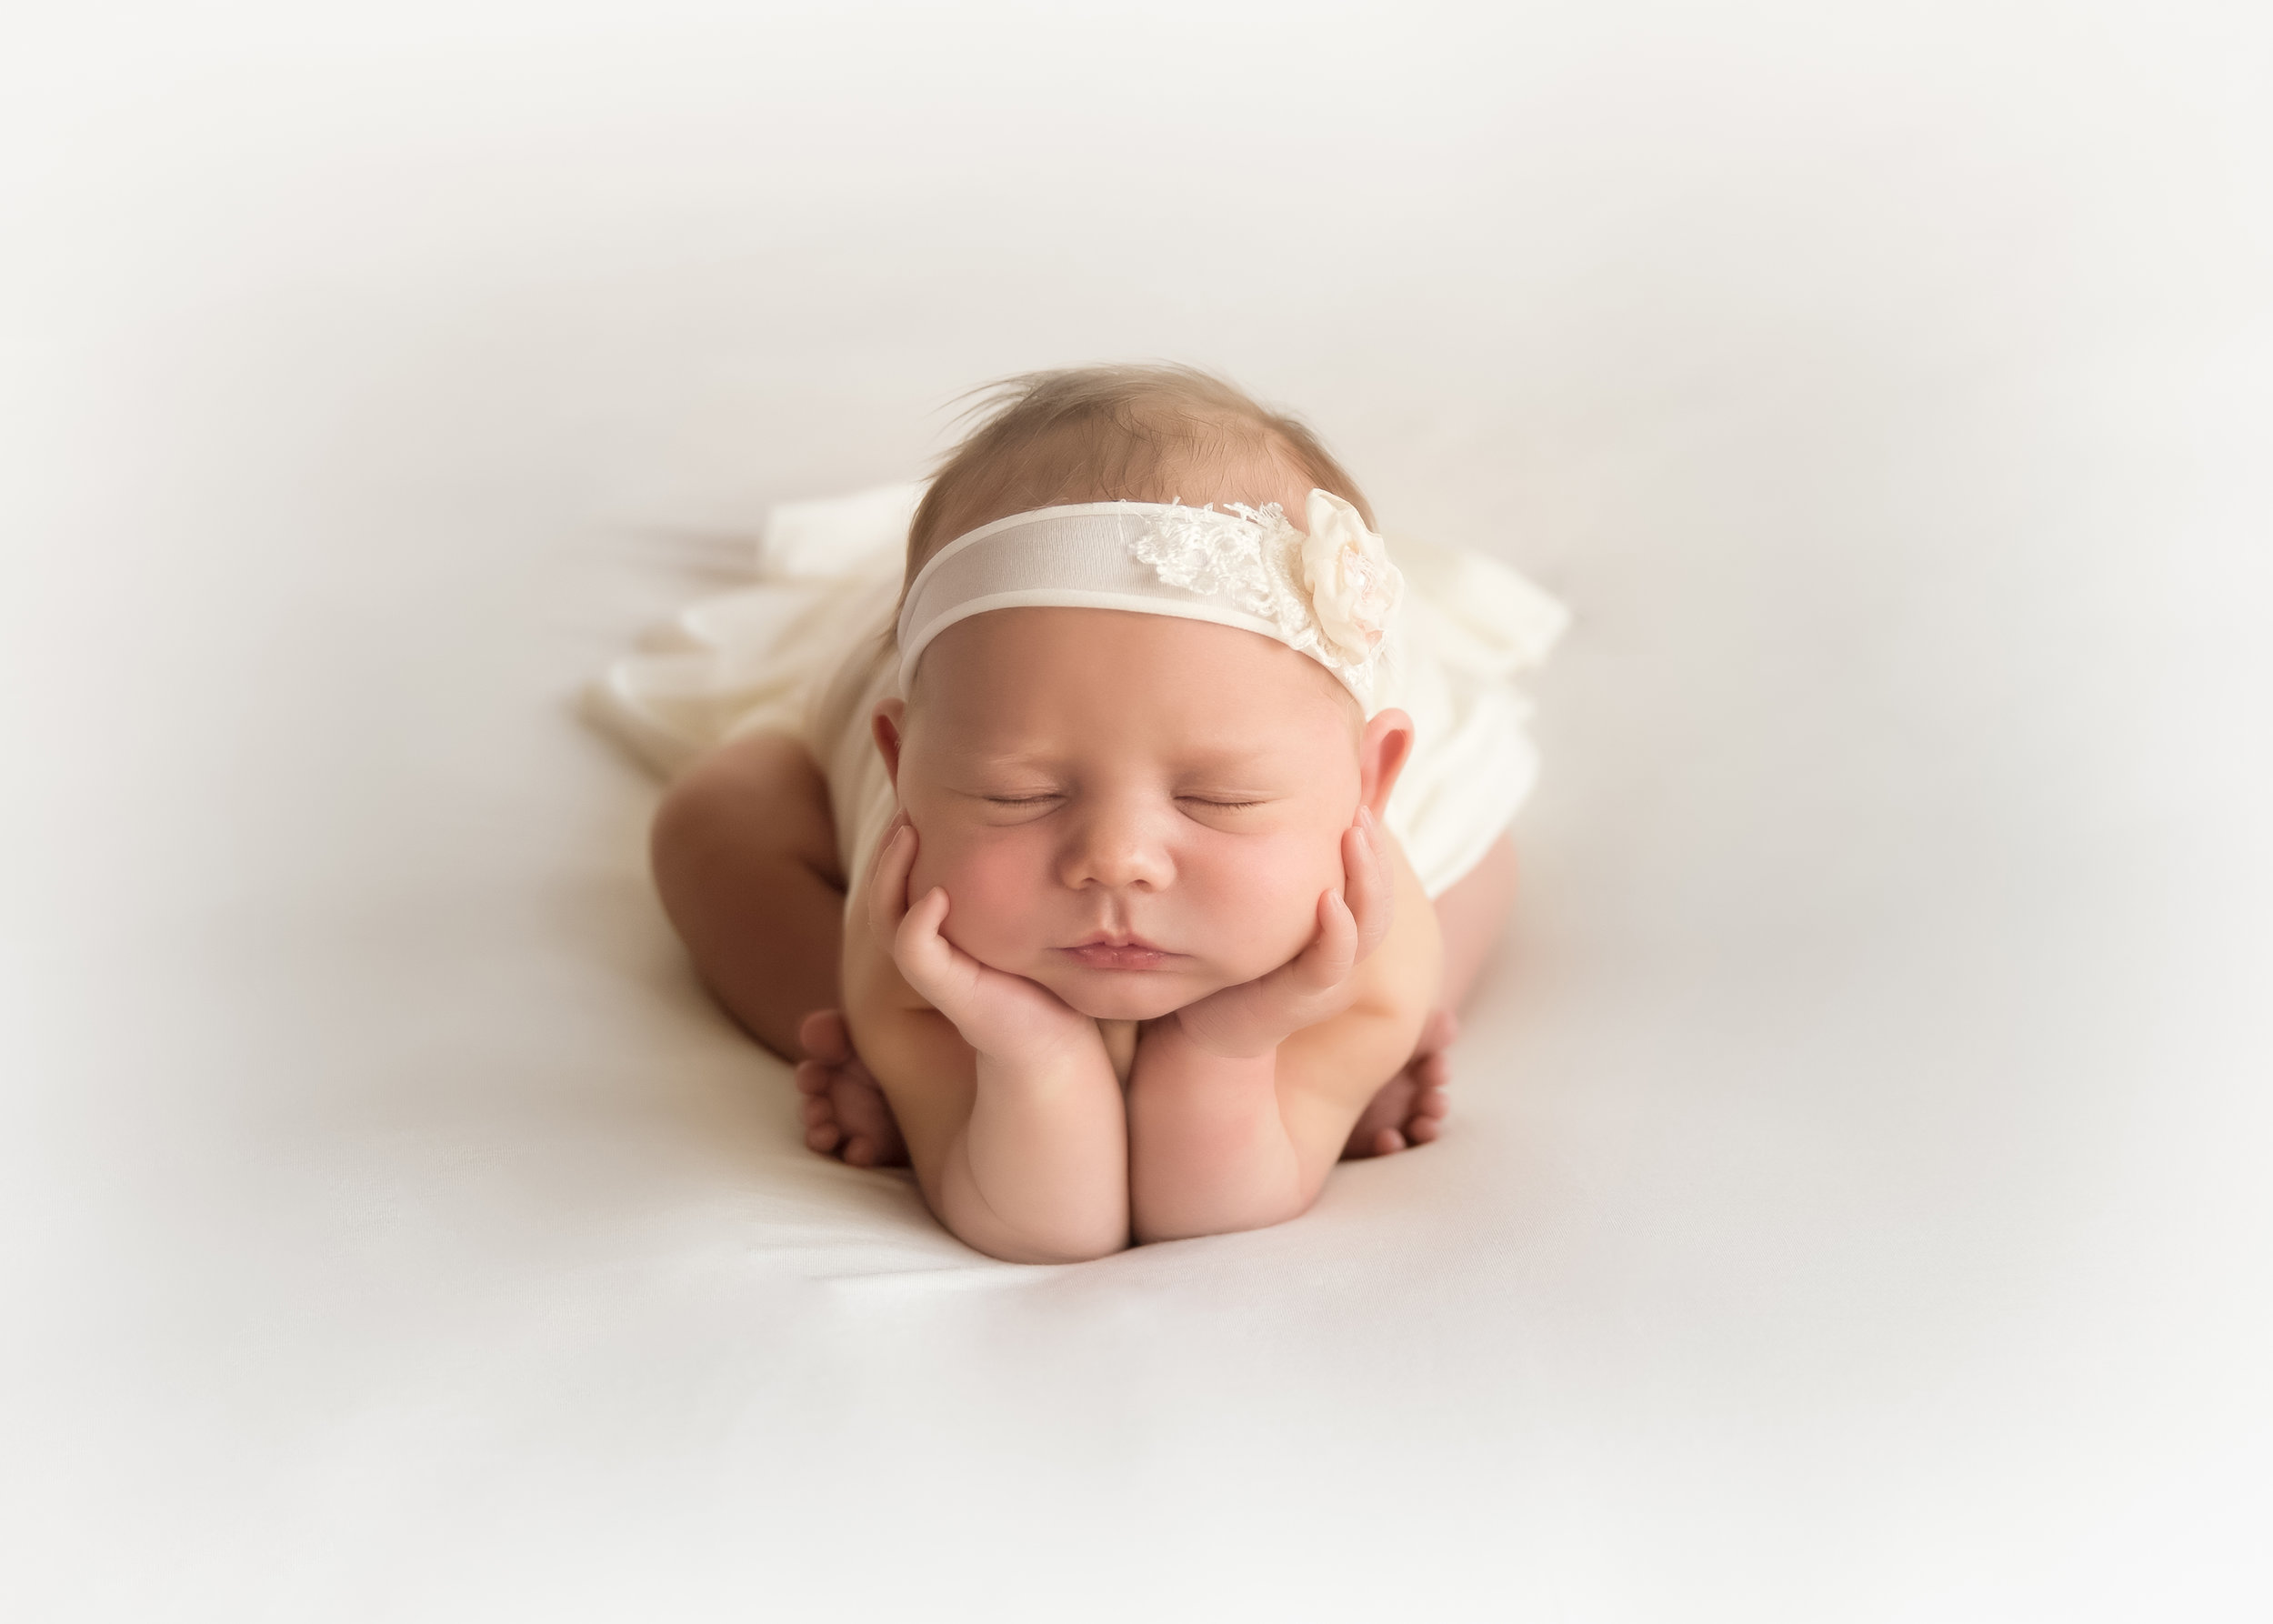 Newborn baby girl in a froggy pose on a beanbag. White backdrop. Newborn photographer in Calgary, Alberta. Milashka Photography